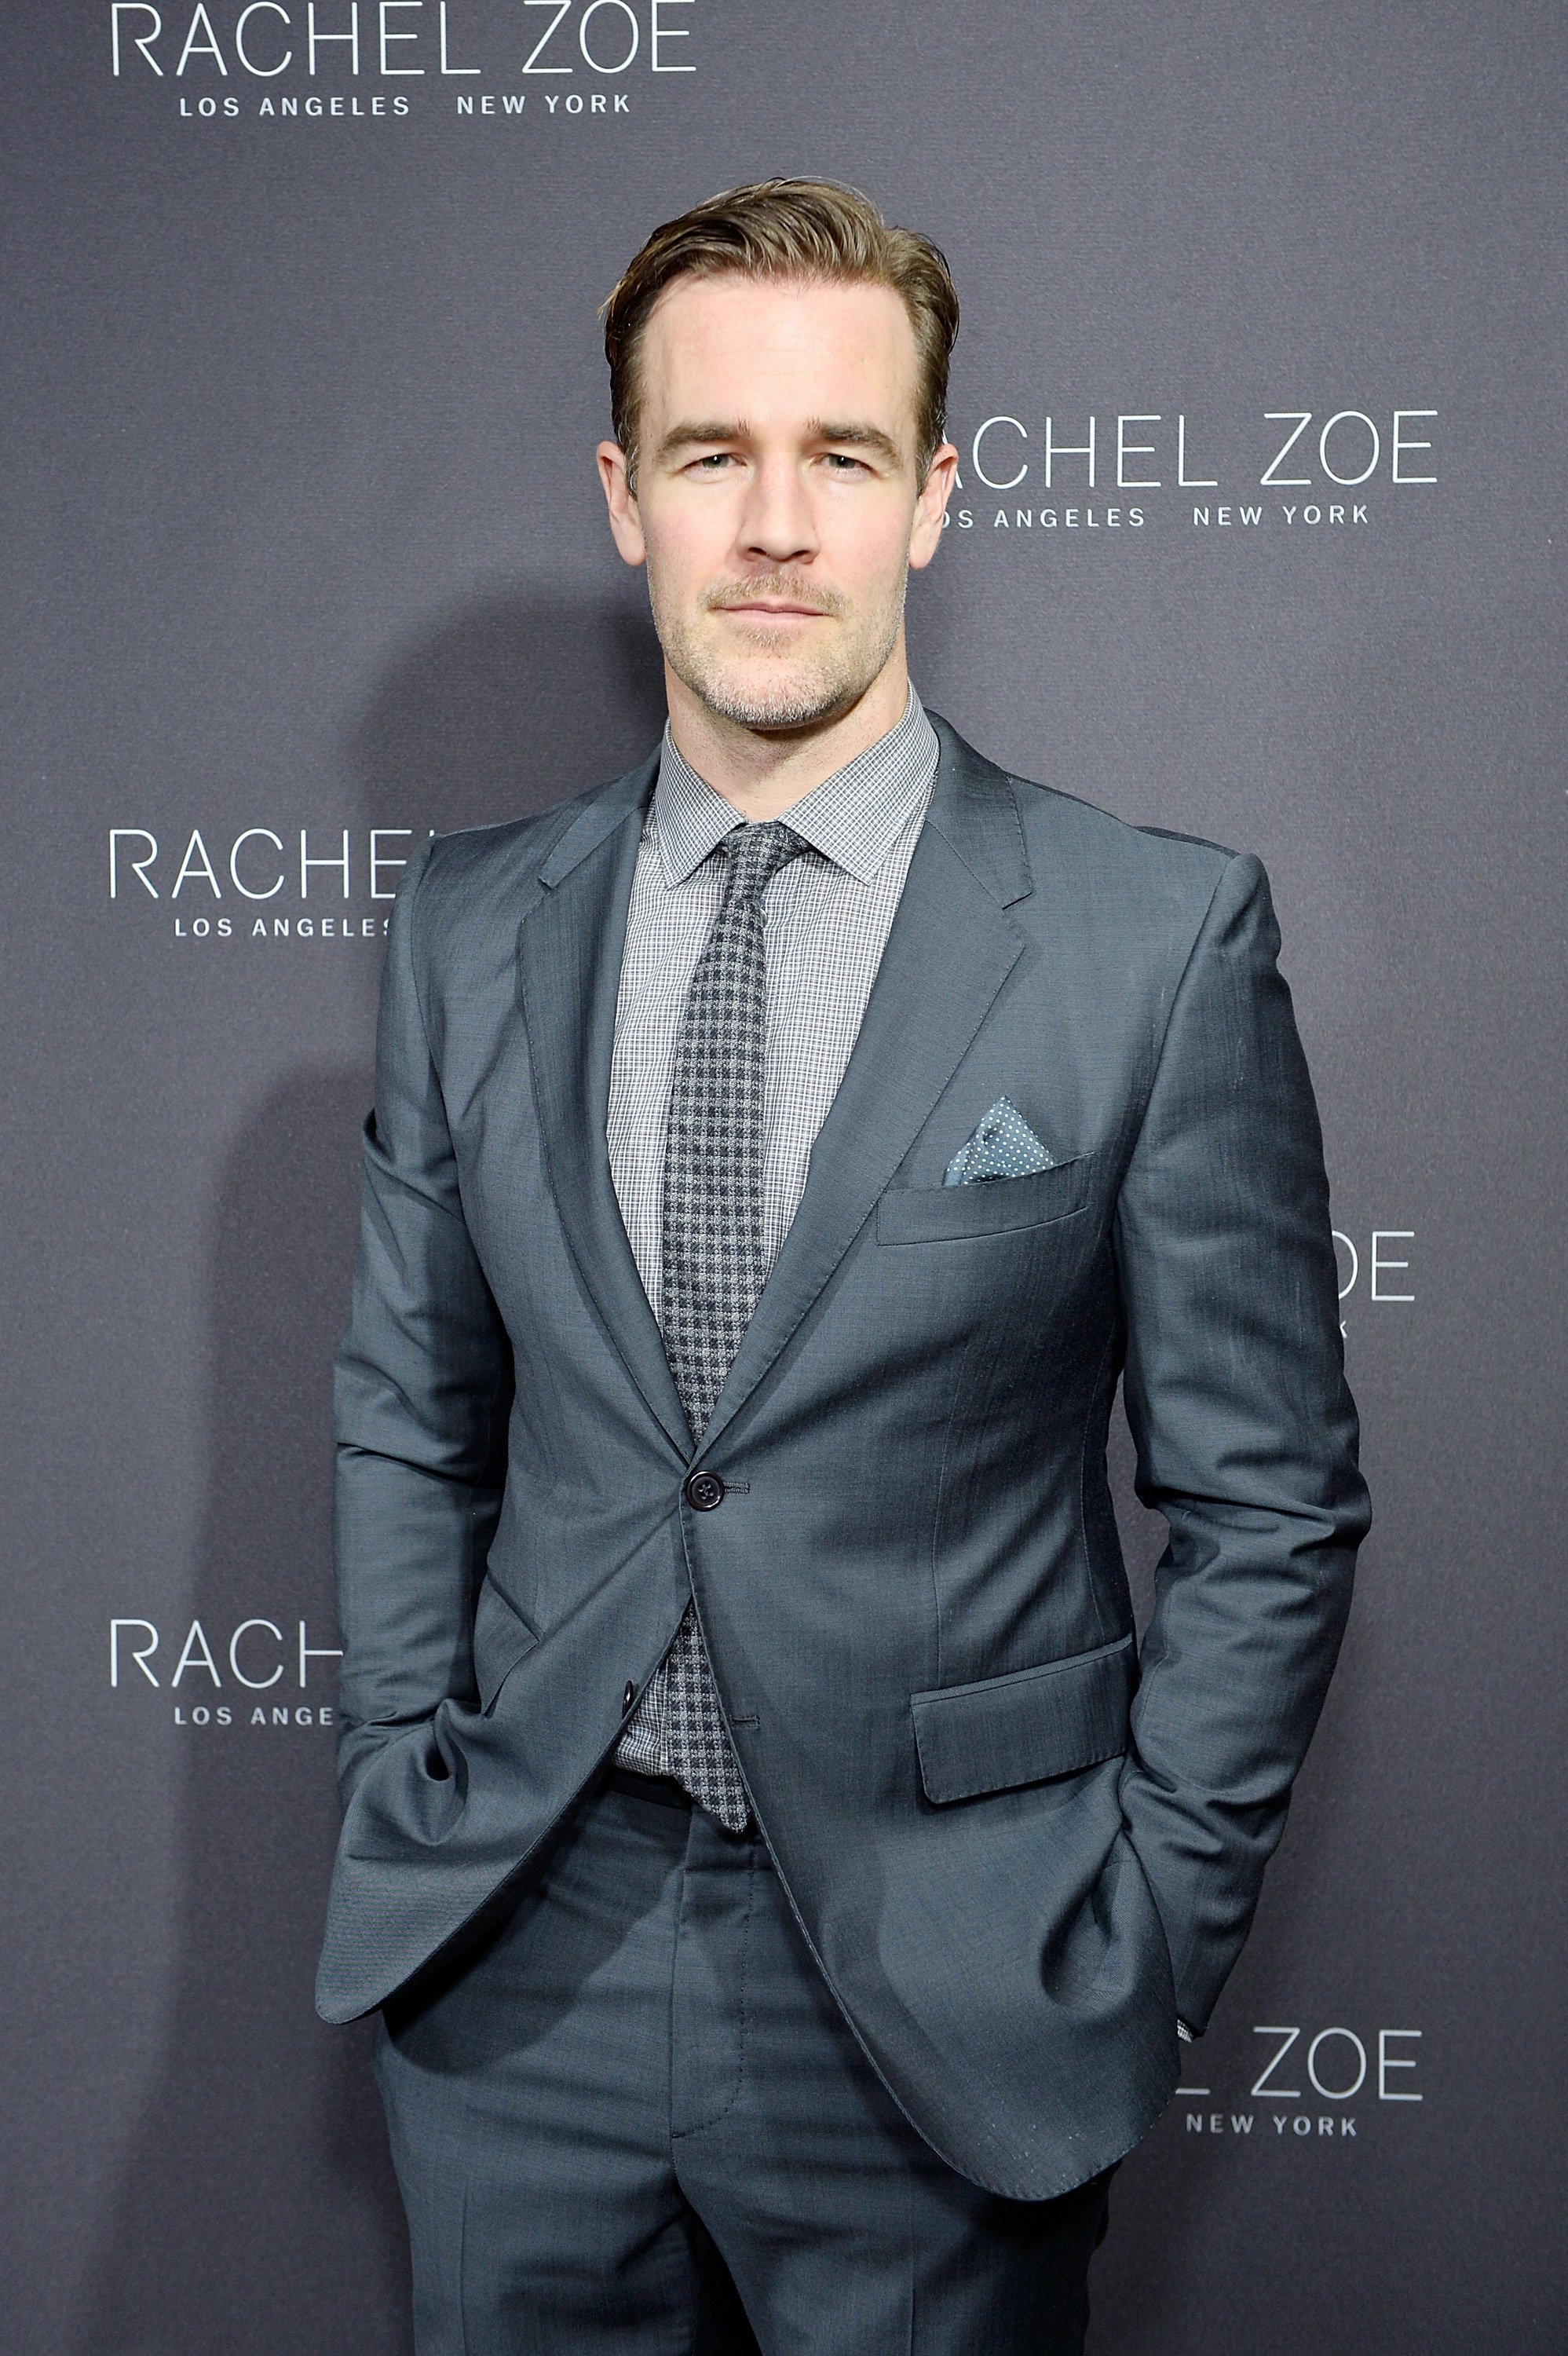 James Van Der Beek at Sunset Tower Hotel on February 6, 2017 in West Hollywood, California | Photo: Getty Images